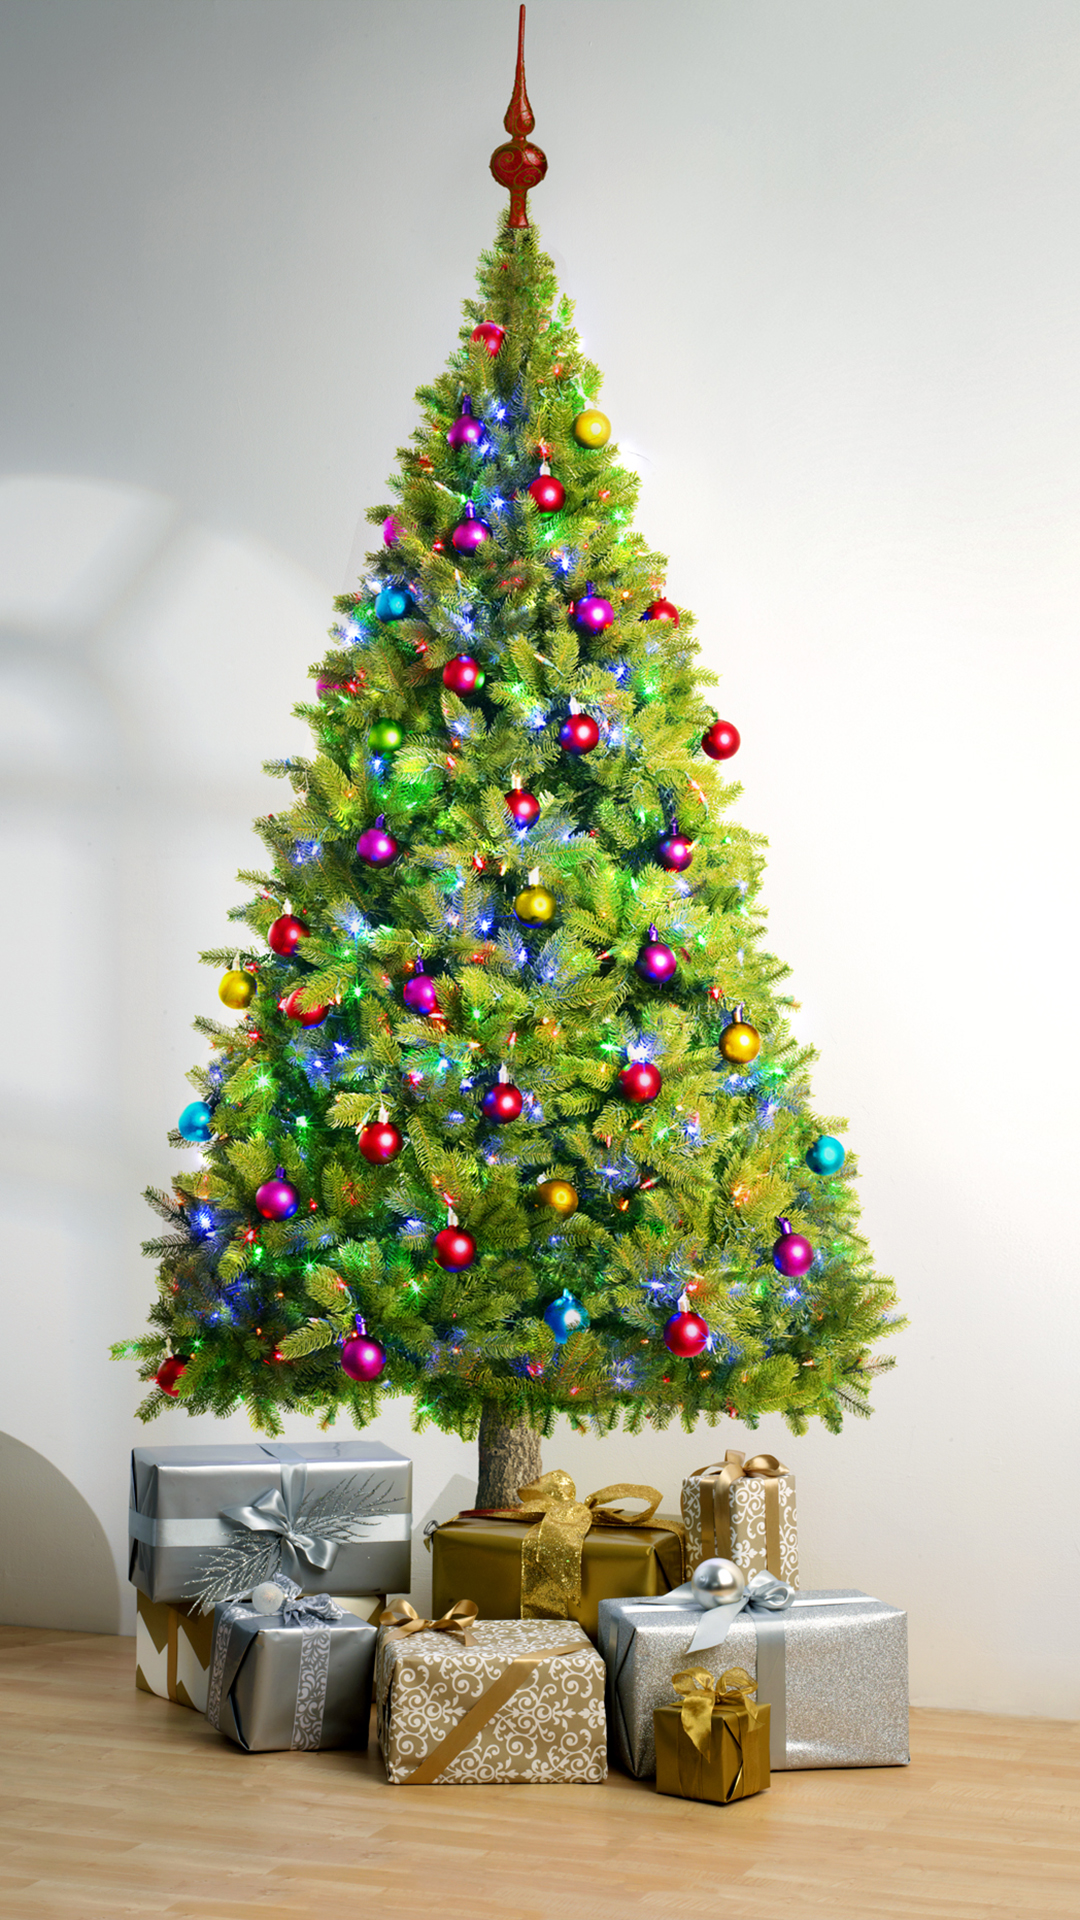 Christmas Tree htc one wallpaper - Best htc one wallpapers, free and easy to download